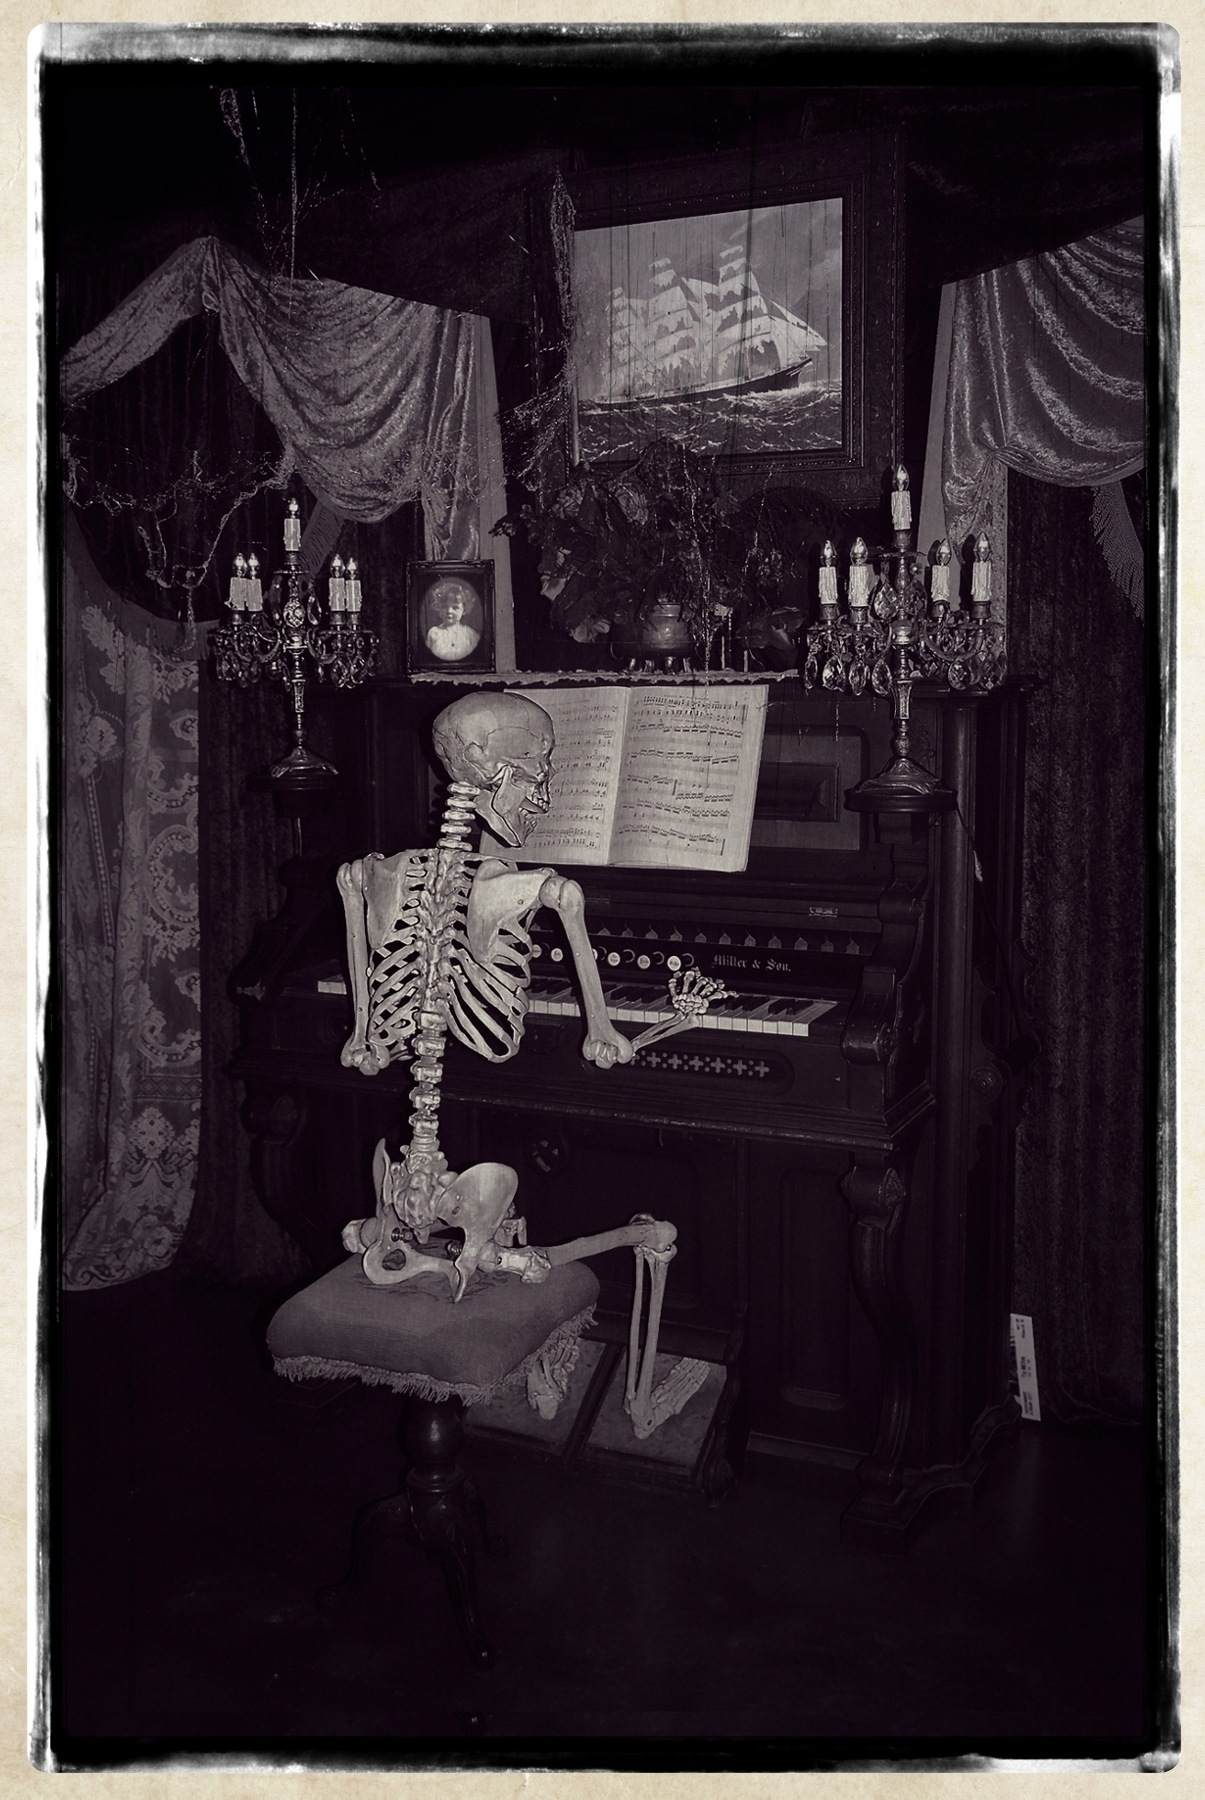 An Old Fashioned Spooky Melody by Lormet-Images